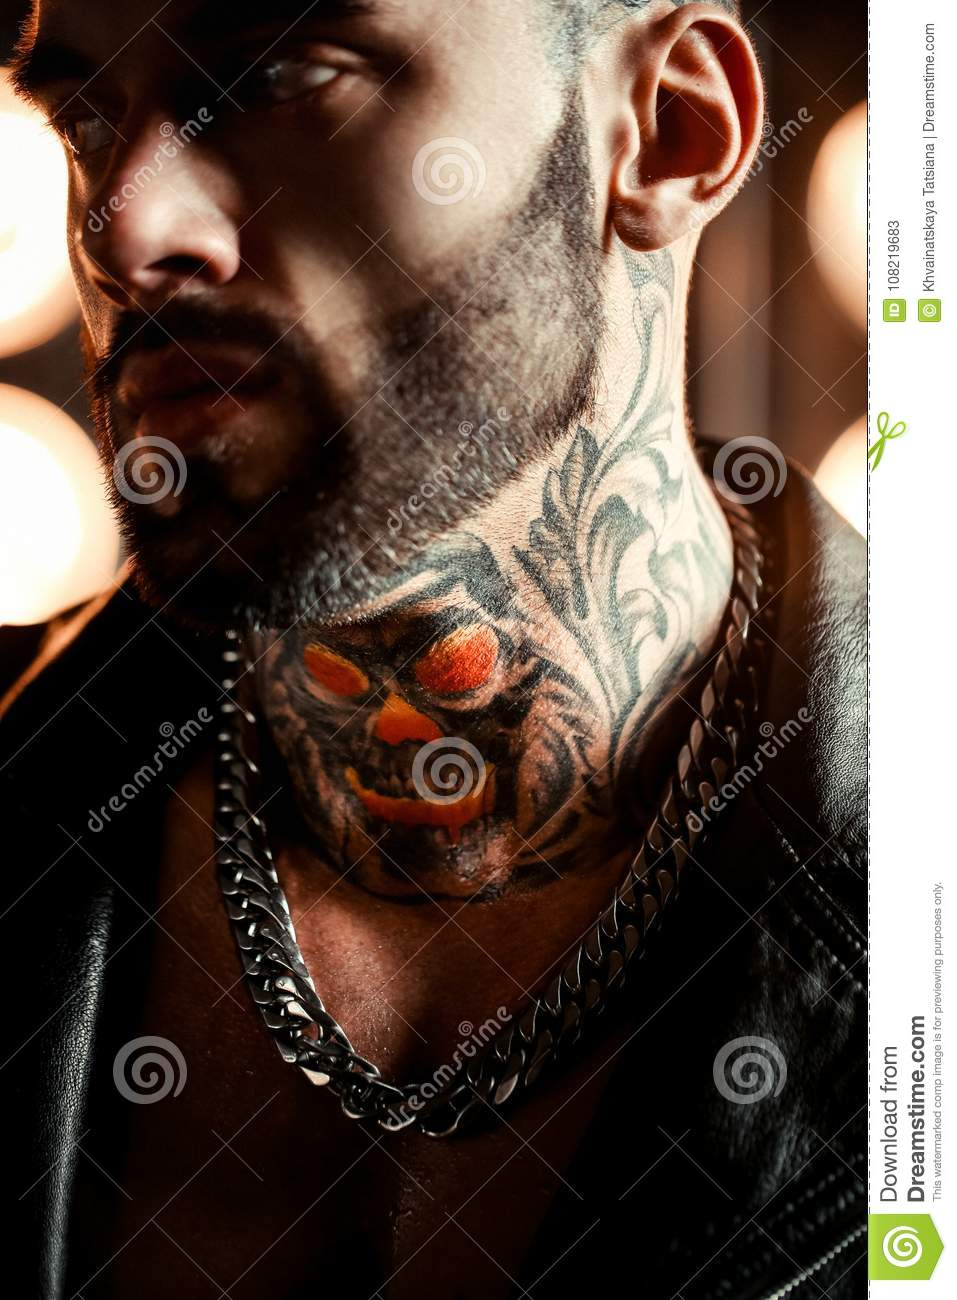 closeup portrait of brutal handsome male model in fashion leather jacket and with a black beard. Tattoo skull and